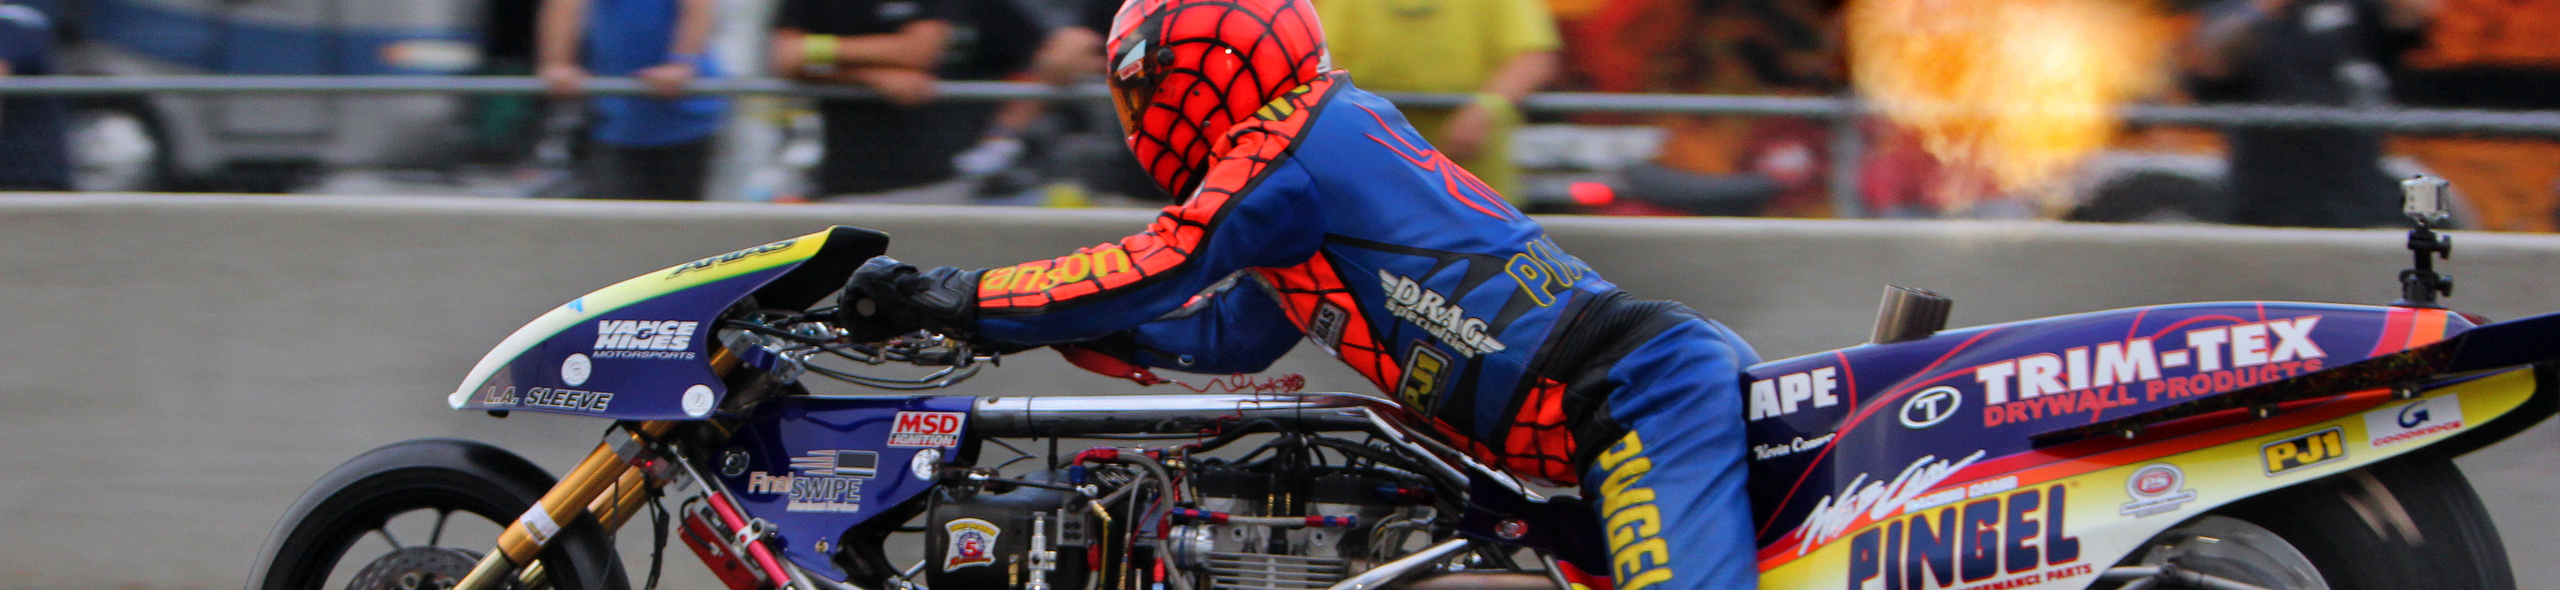 Spiderman Larry McBride trusts his Vanson Drag Racing Leathers